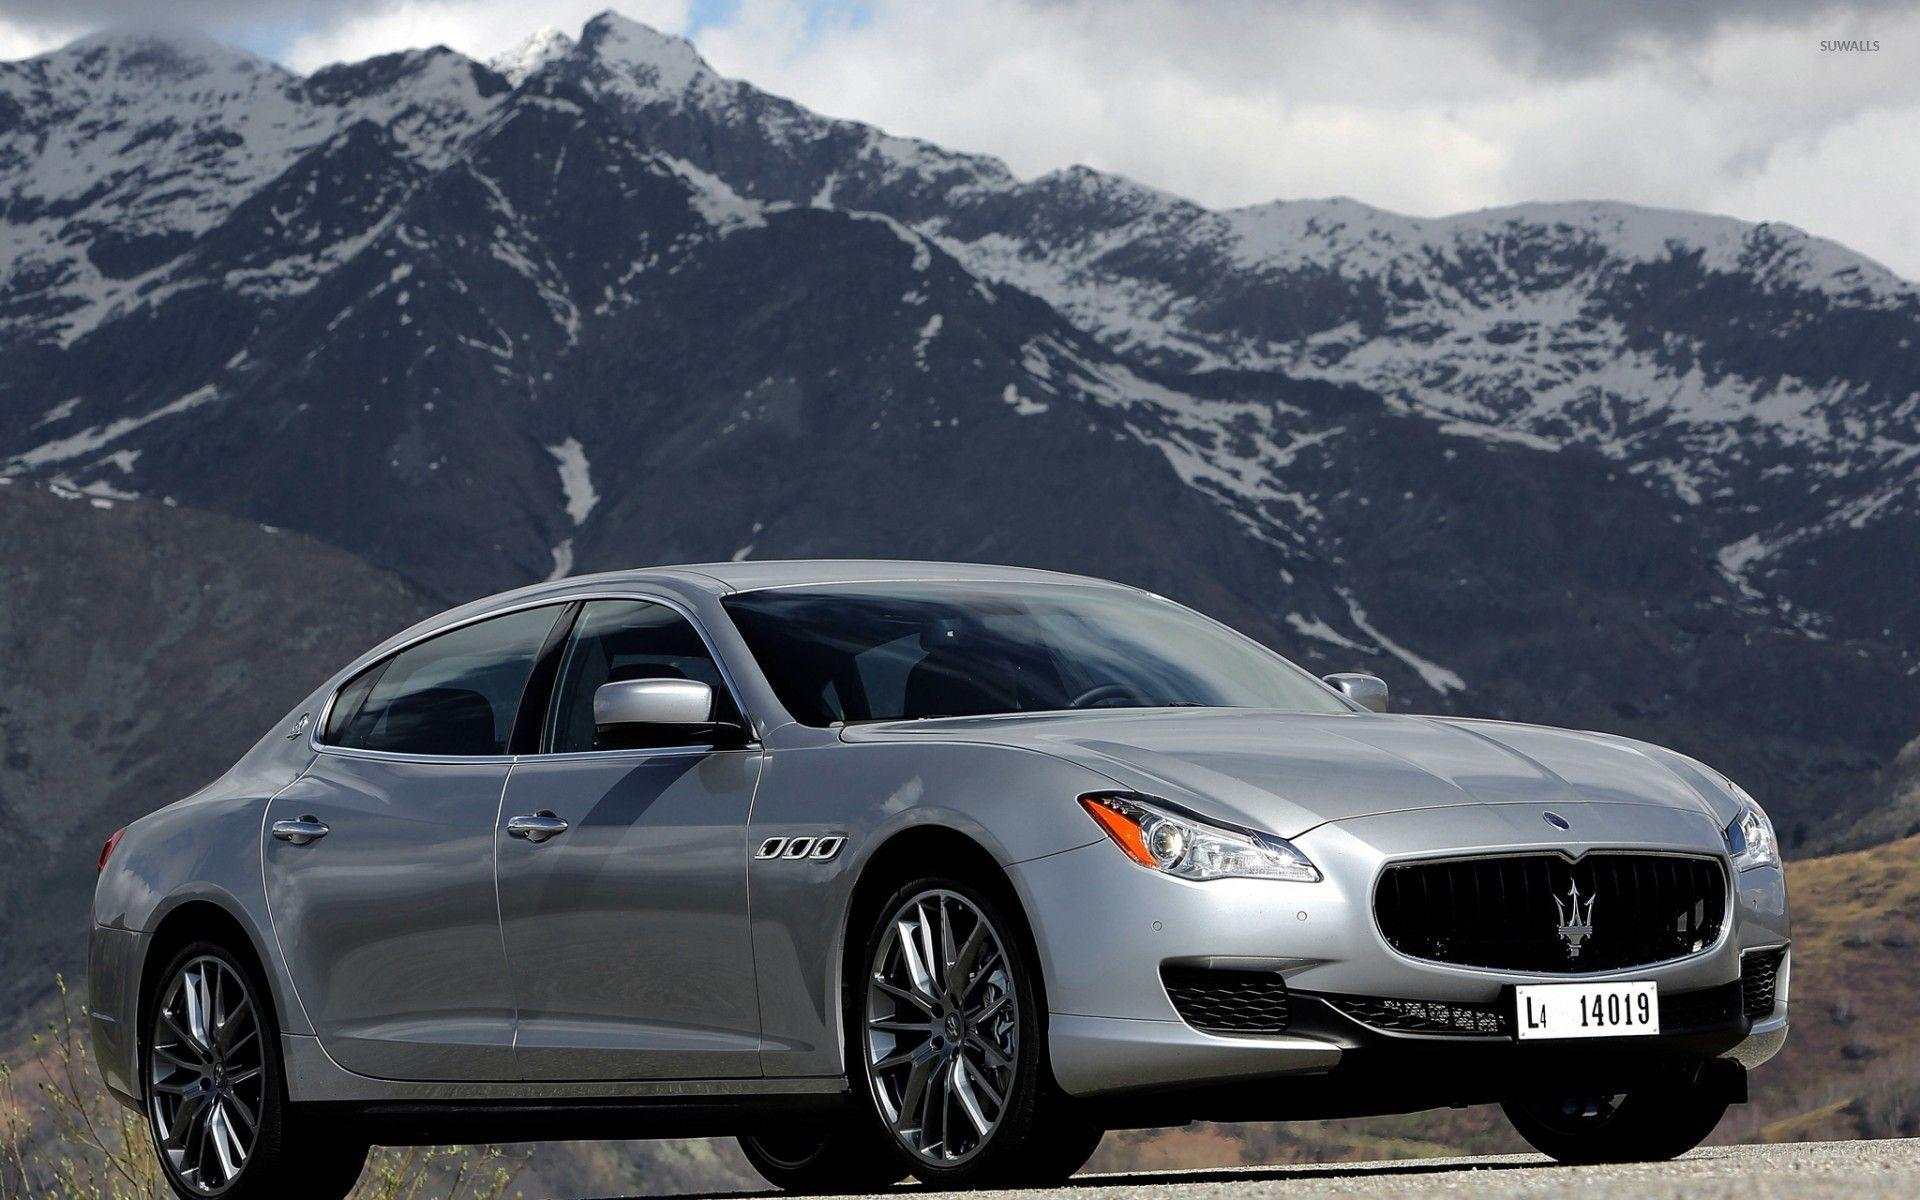 Maserati Quattroporte [2] wallpaper - Car wallpapers - #46647